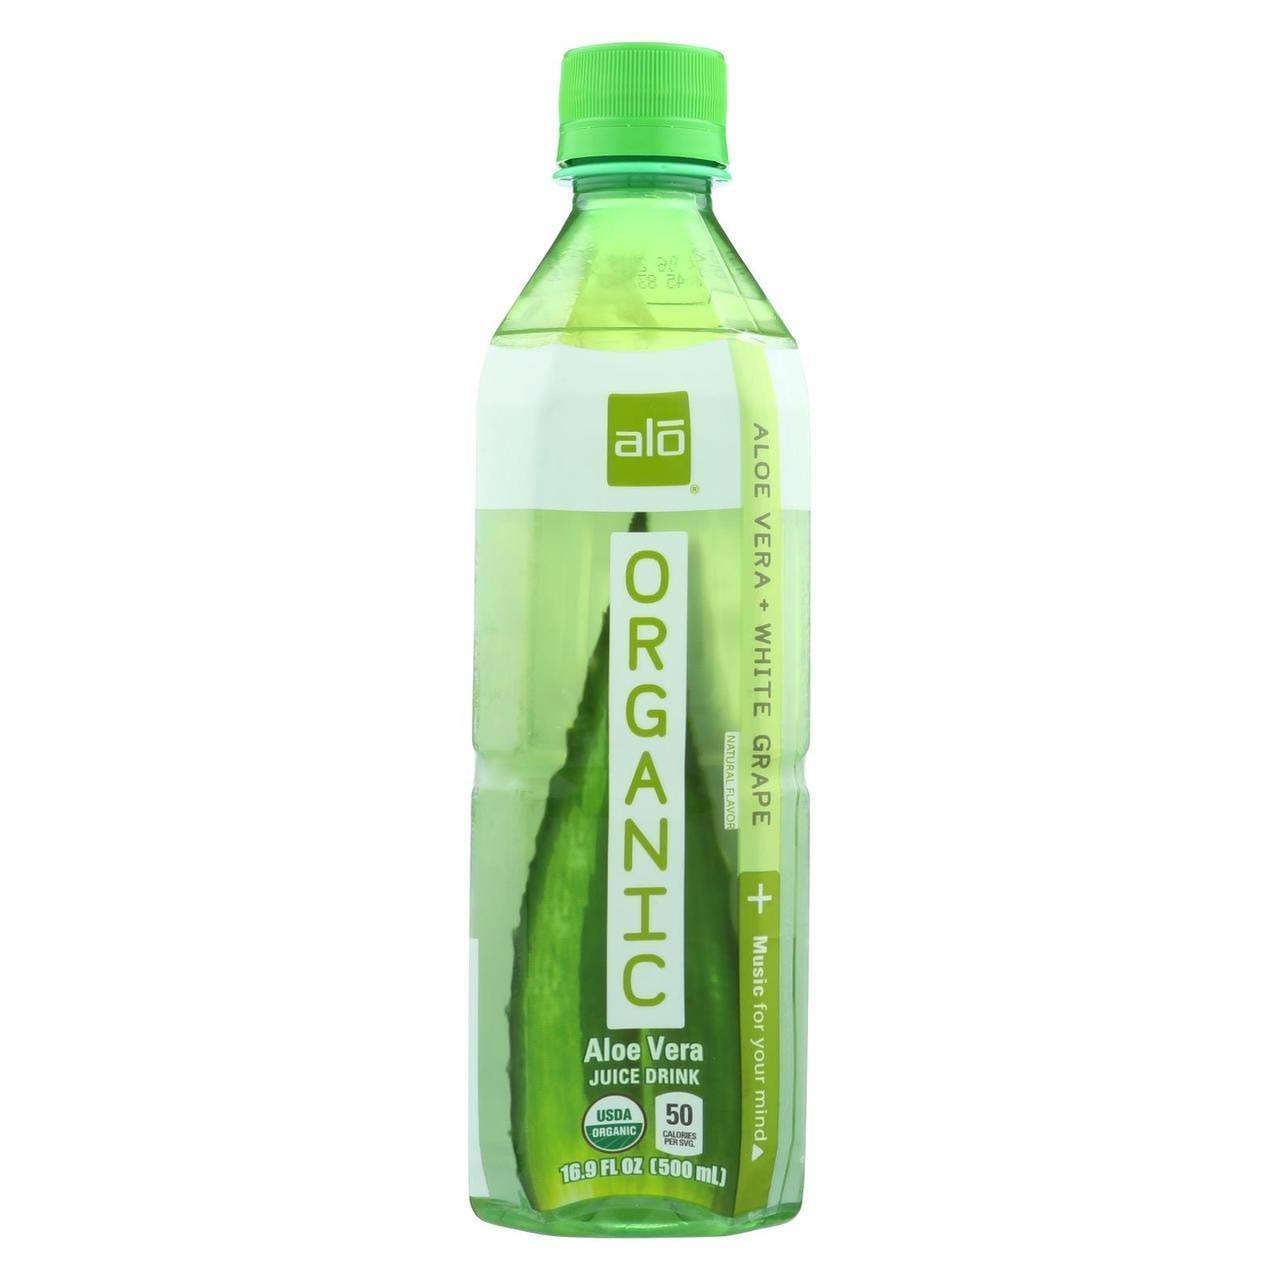 Alo Aloe Vera + White Grape Organic Aloe Vera Juice Drink